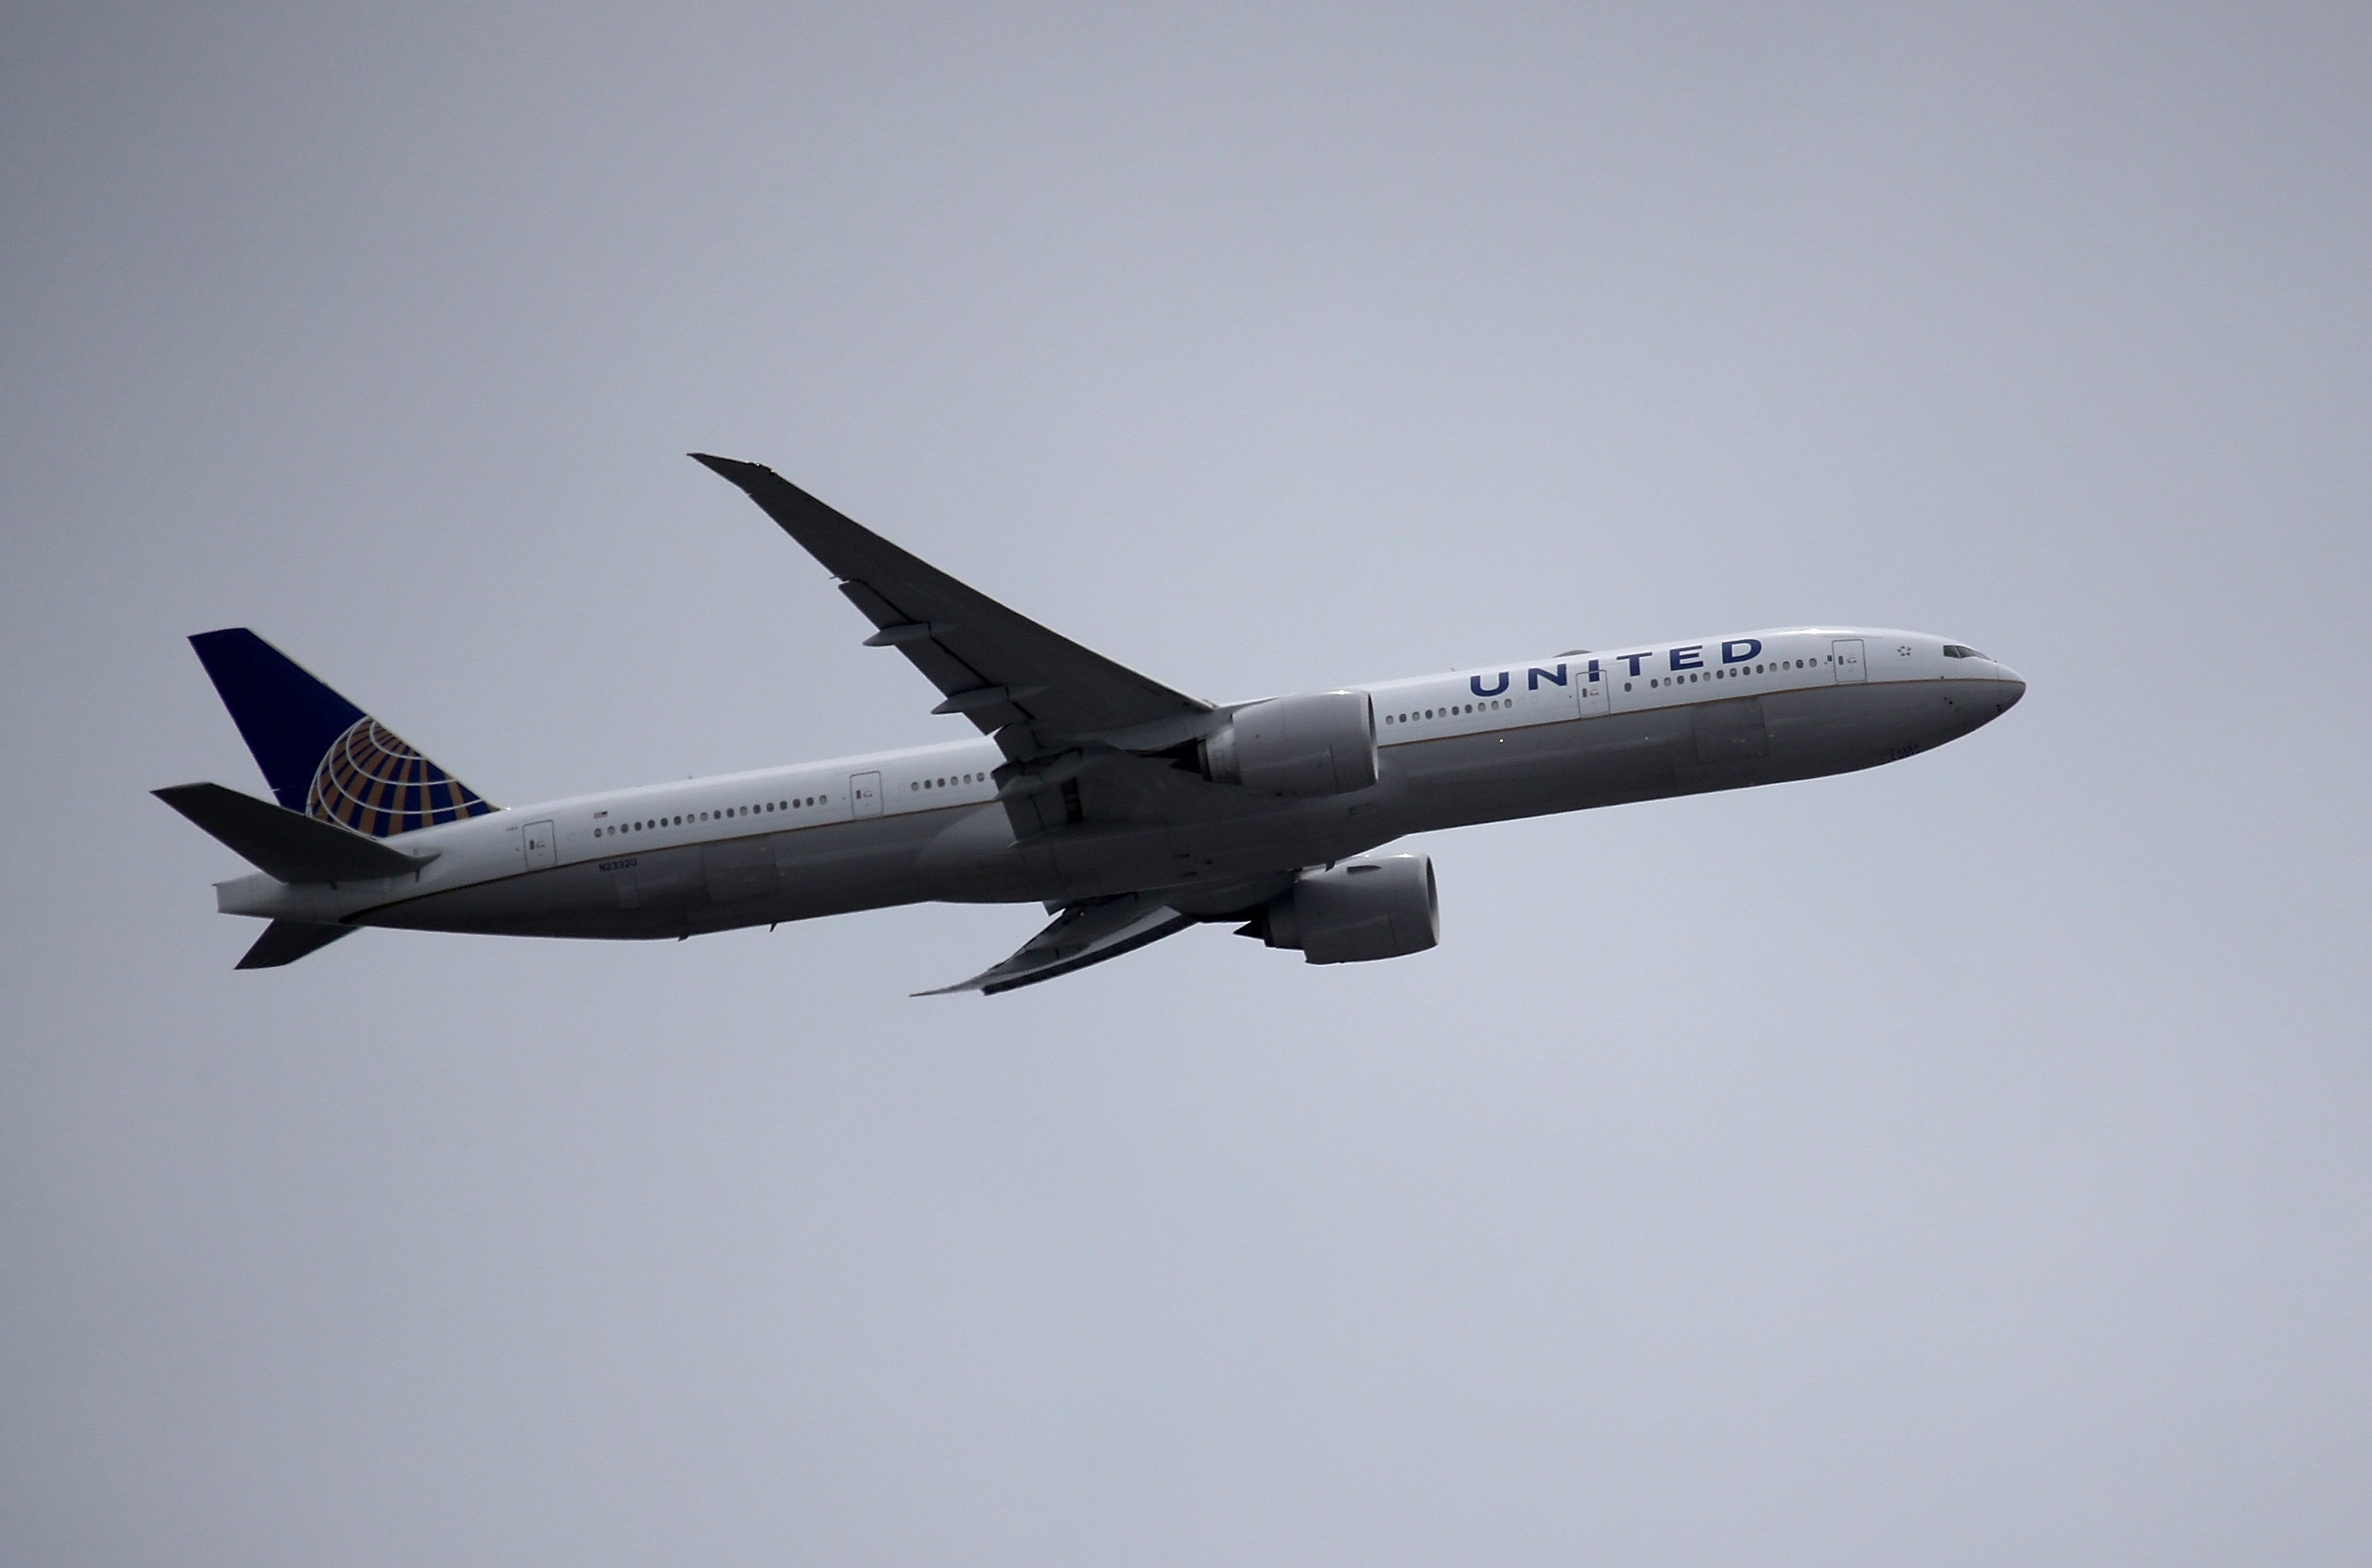 A United Airlines plane taking off from San Francisco International Airport | Photo: Getty Images